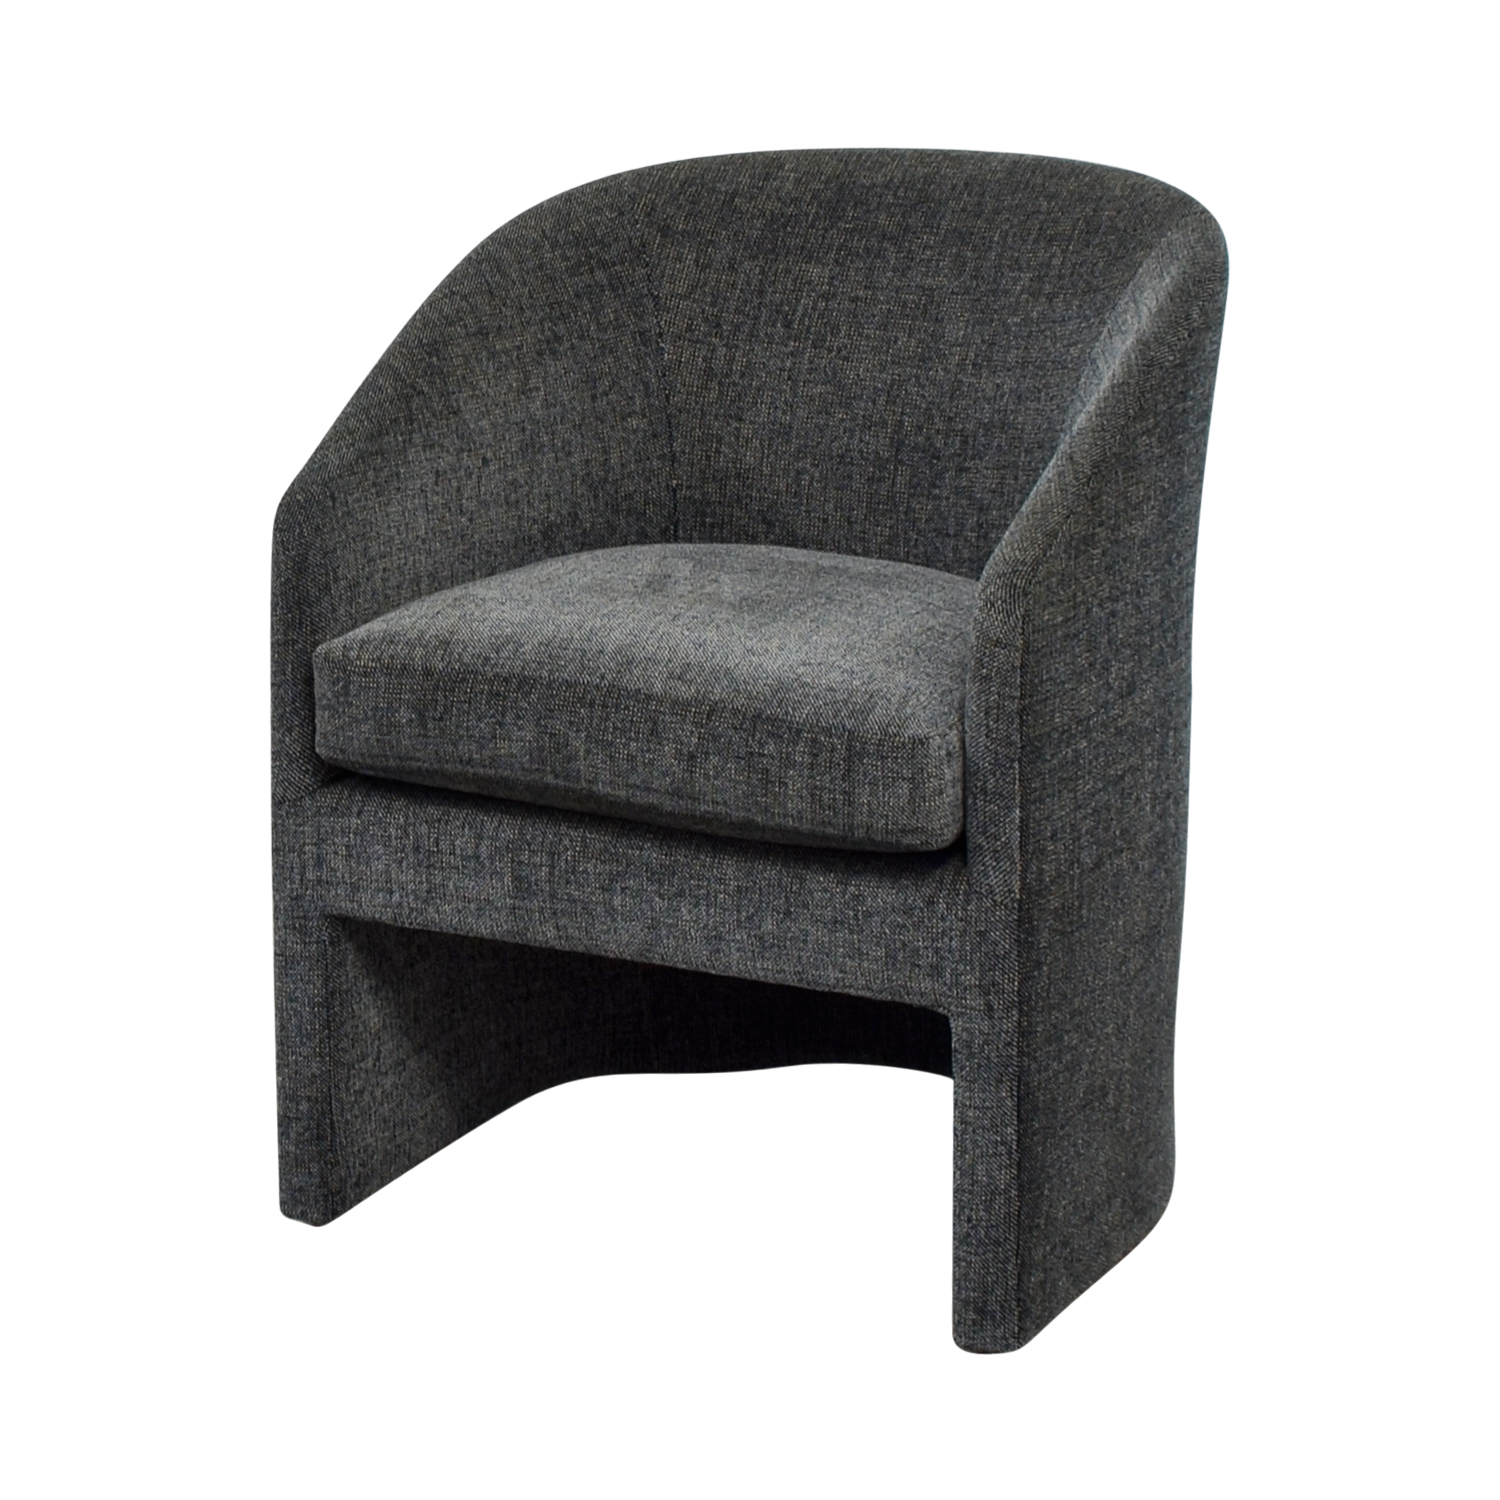 79 Off Donghia Donghia Navy Tweed Barrel Chair Chairs